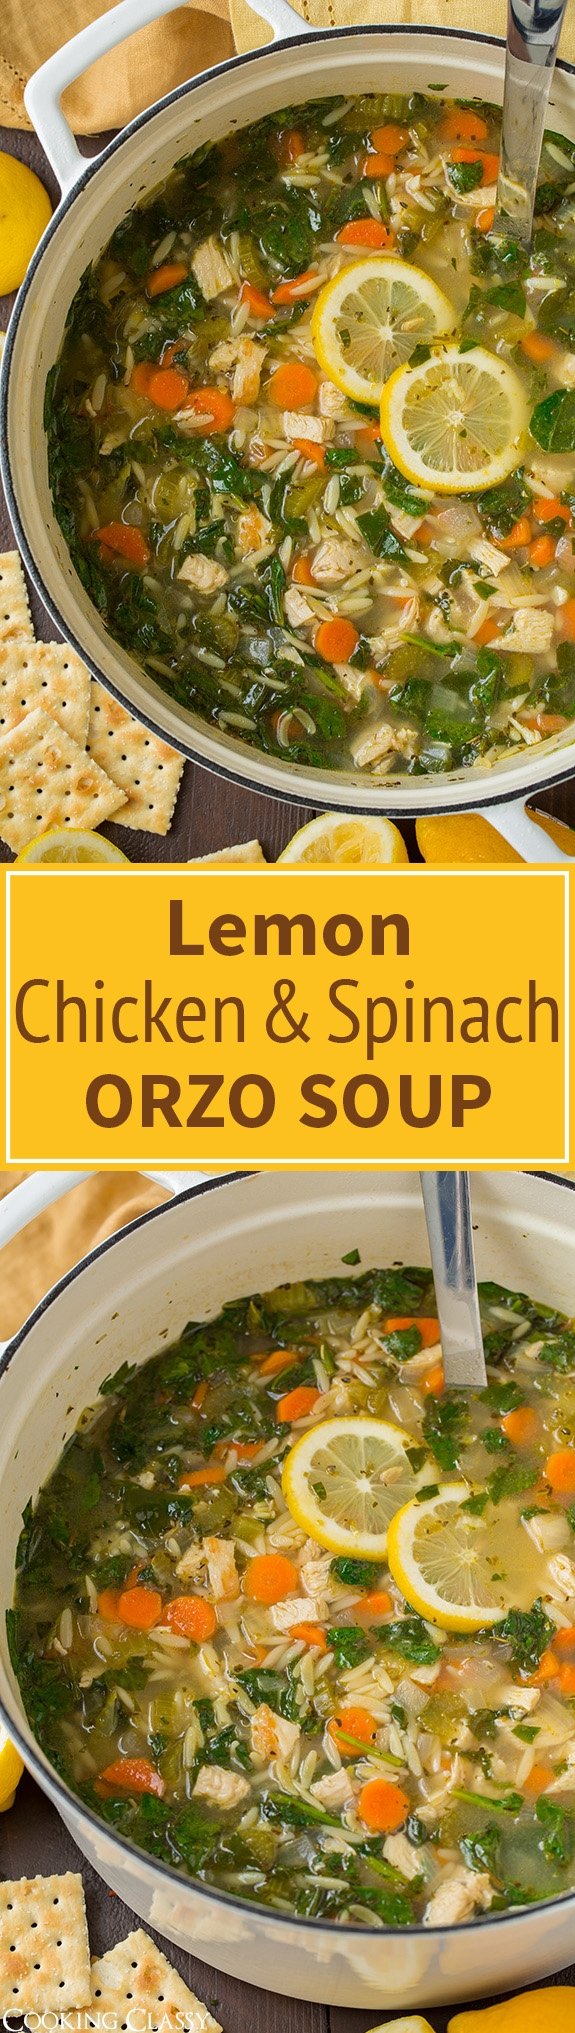 Lemon Chicken and Spinach Orzo Soup - easy, hearty one pot soup! Amazing flavor! I'll make this again and again. #weightlossrecipes